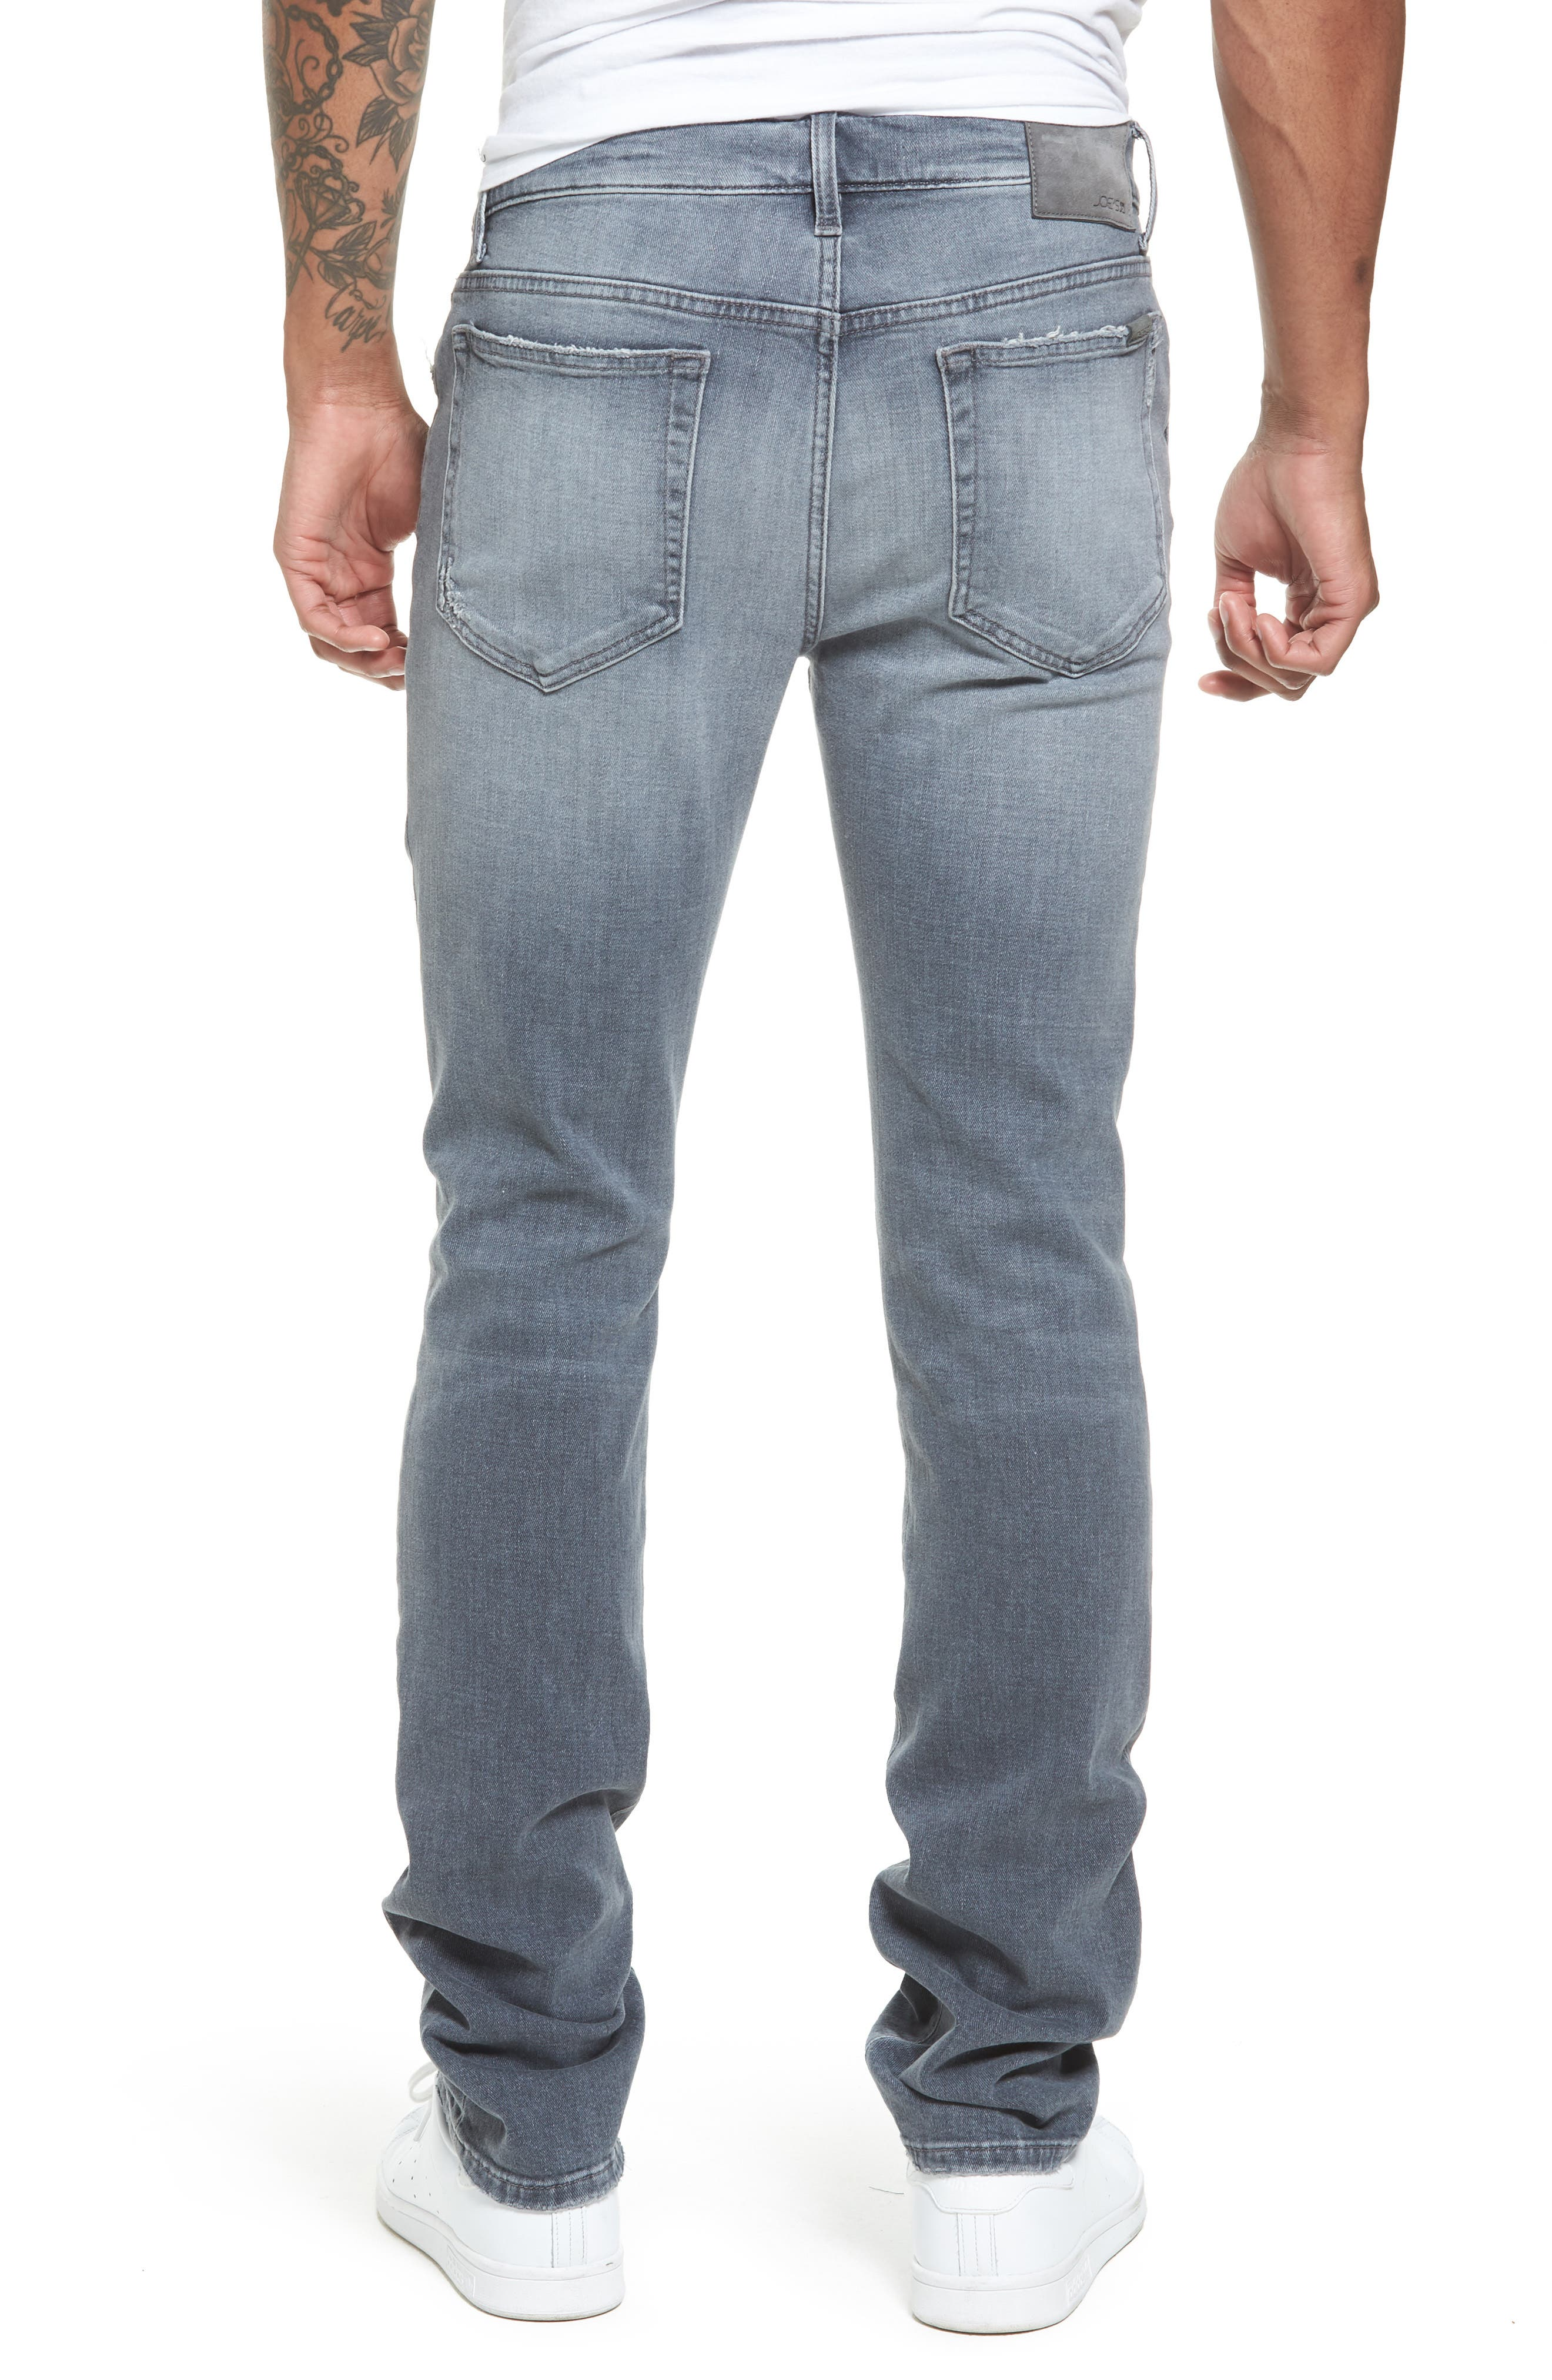 Brixton Distressed Slim Straight Fit Jeans,                             Alternate thumbnail 2, color,                             051